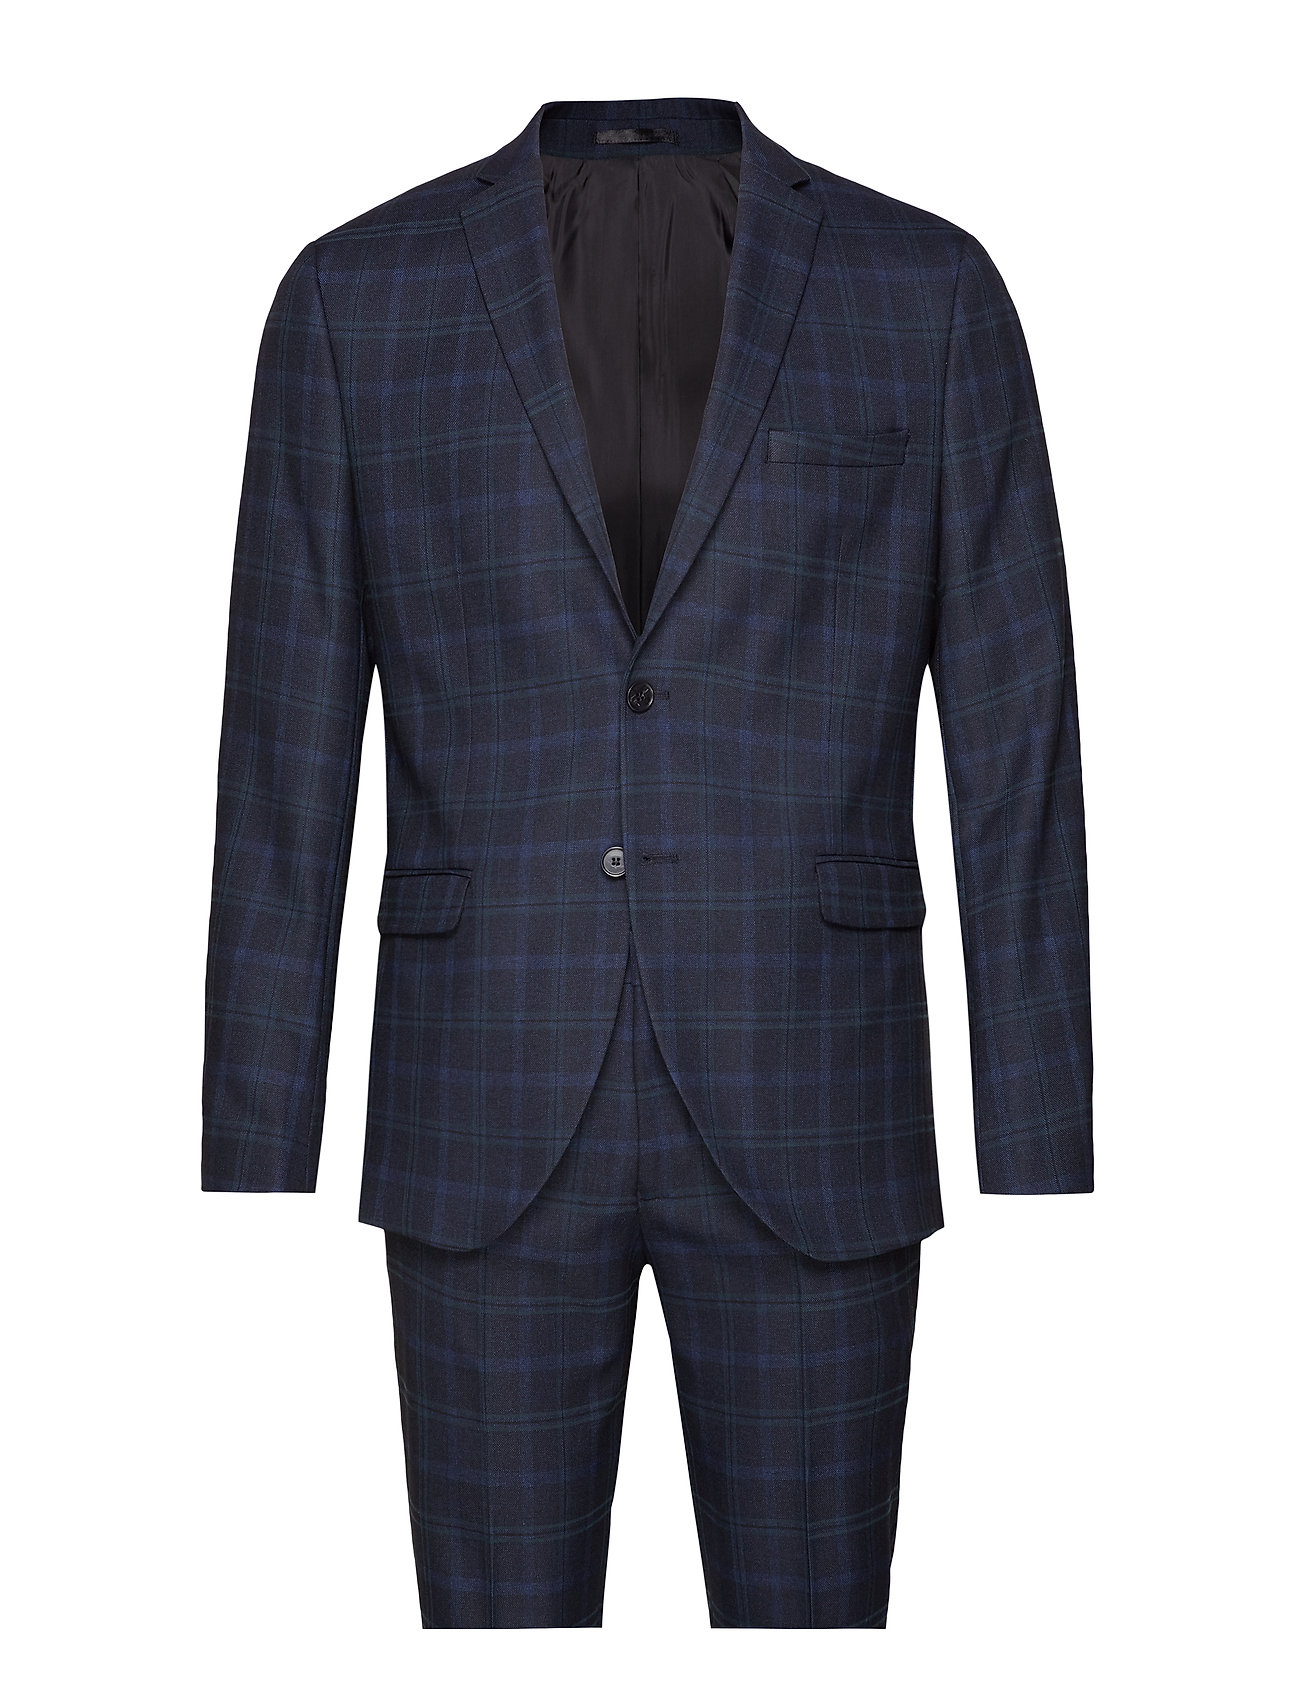 Selected Homme SLHSLIM-MYLONAPE DK BLUE CHECK SUIT B EX - DARK BLUE